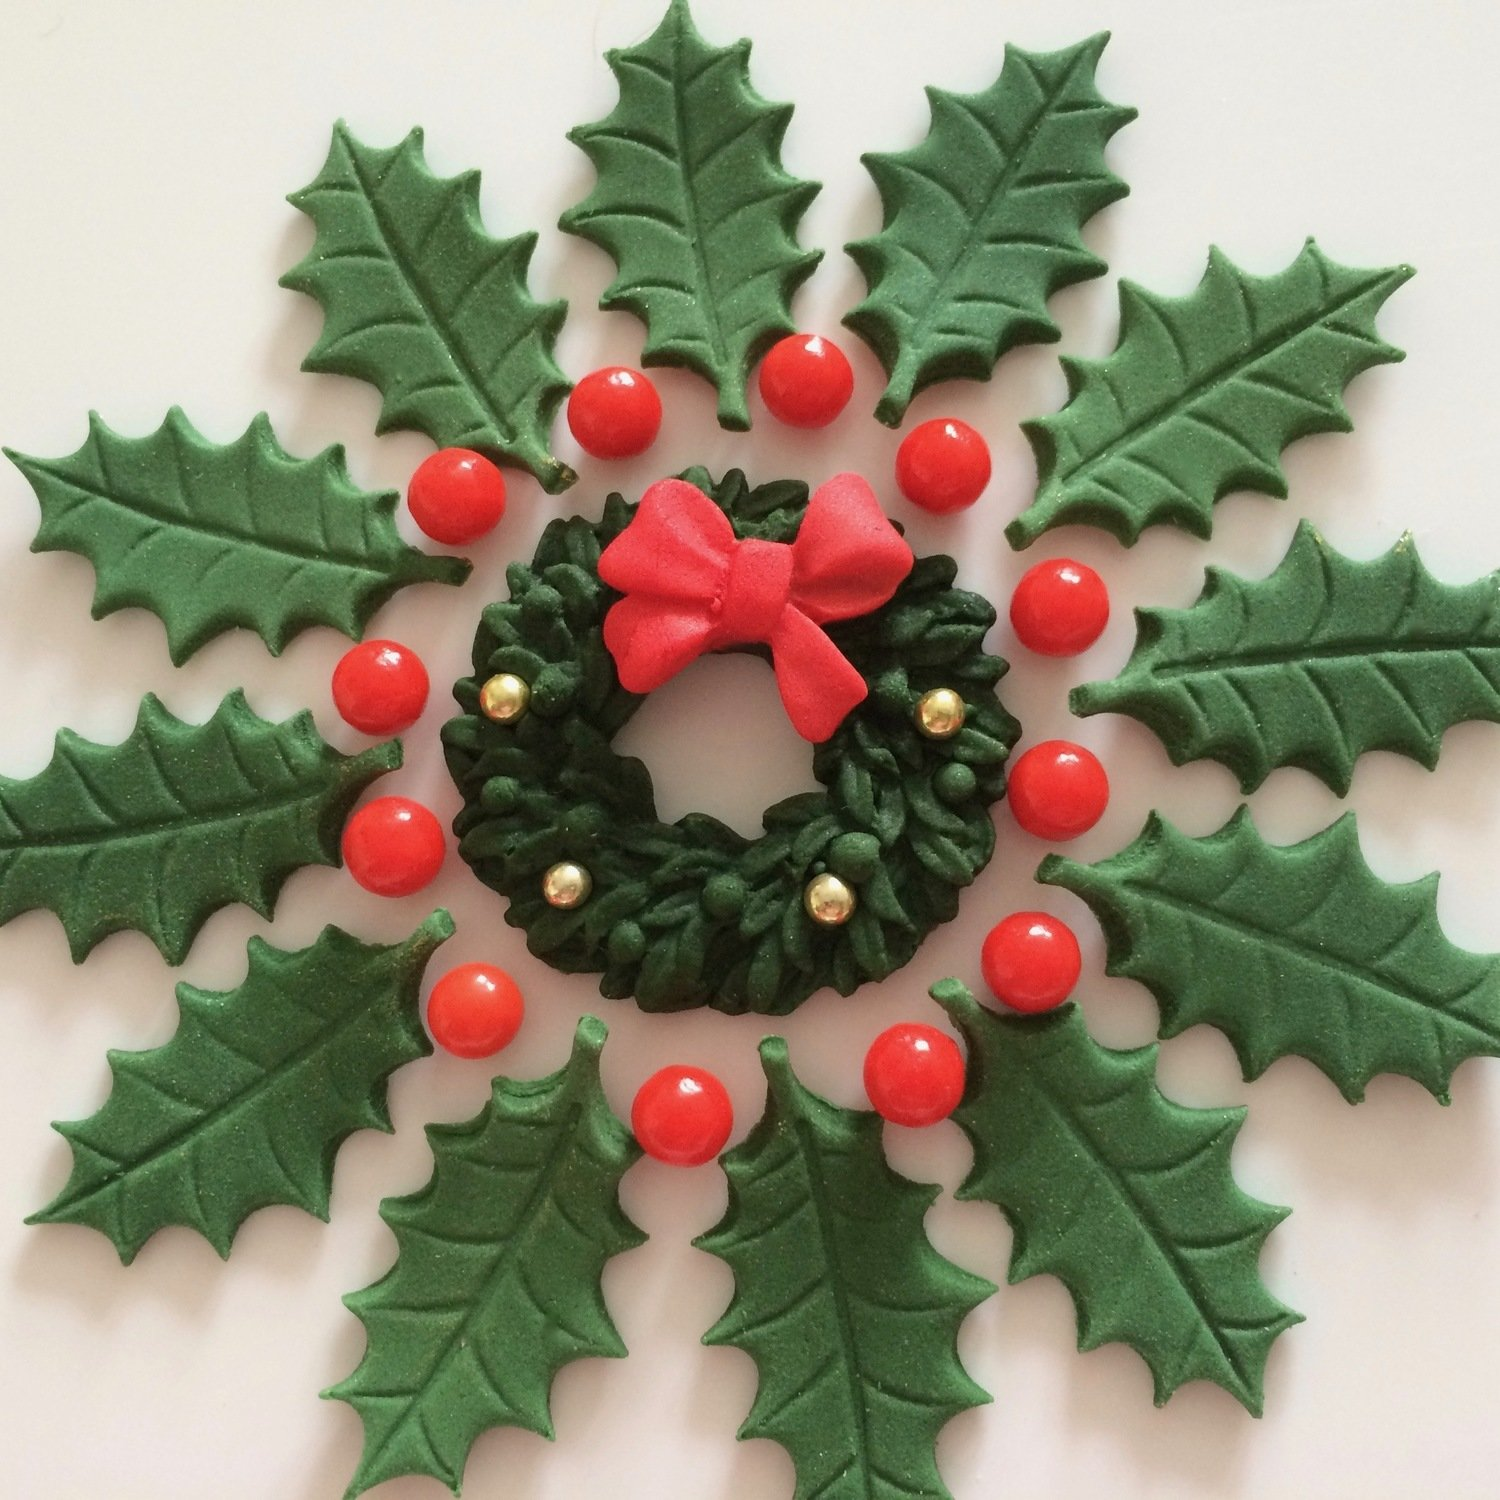 Green Holly Wreath